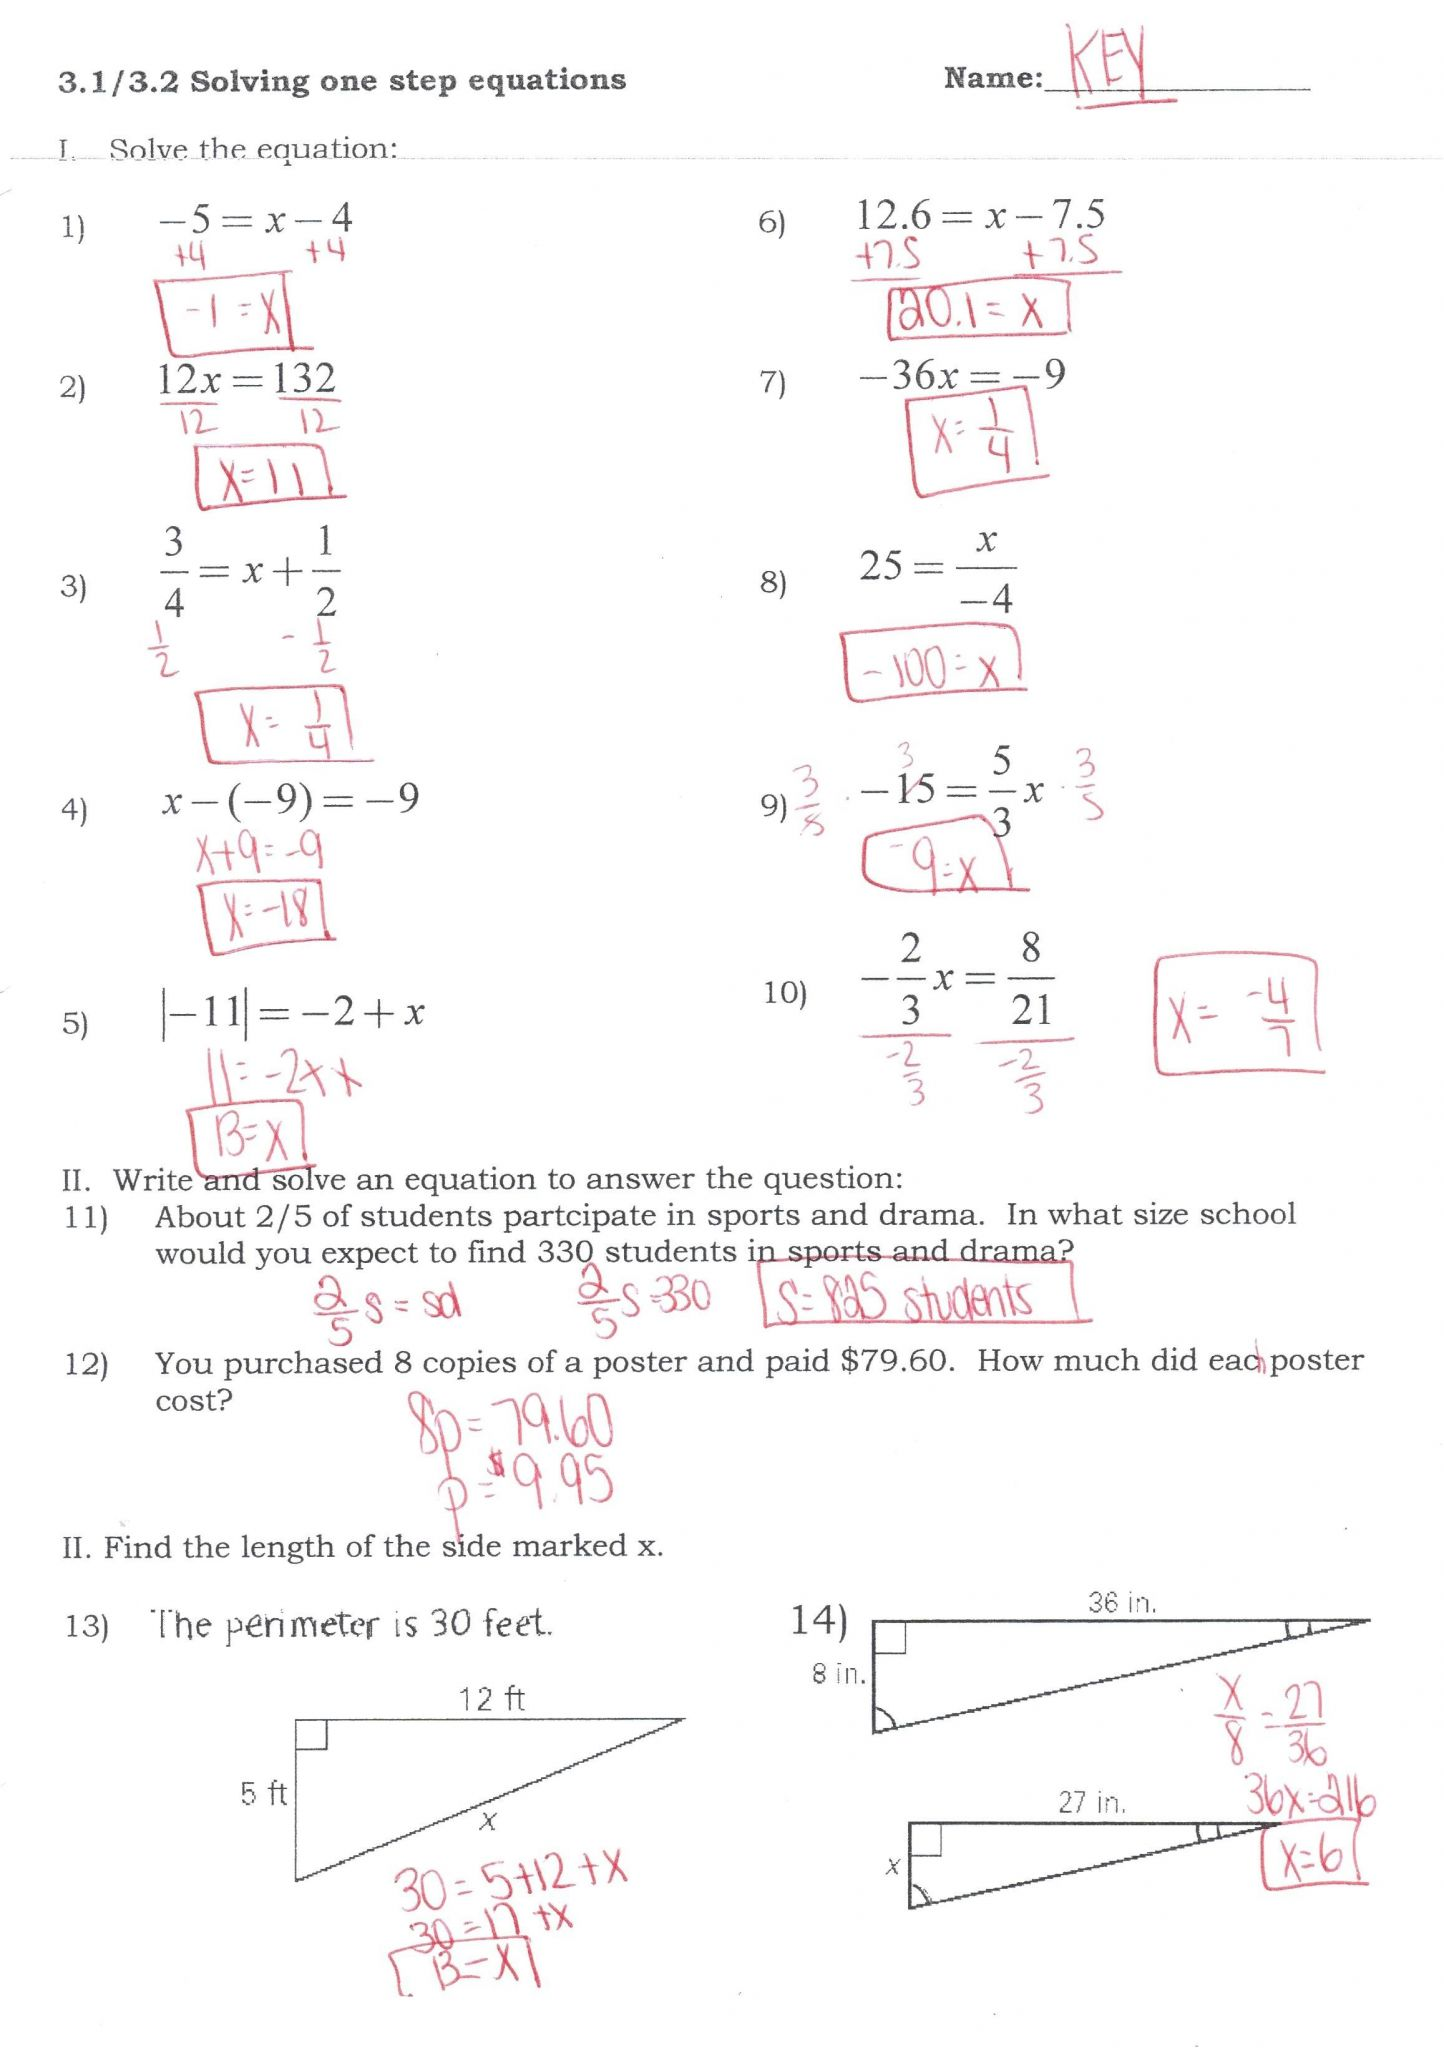 Solving One Step Equations Worksheet Answer Key